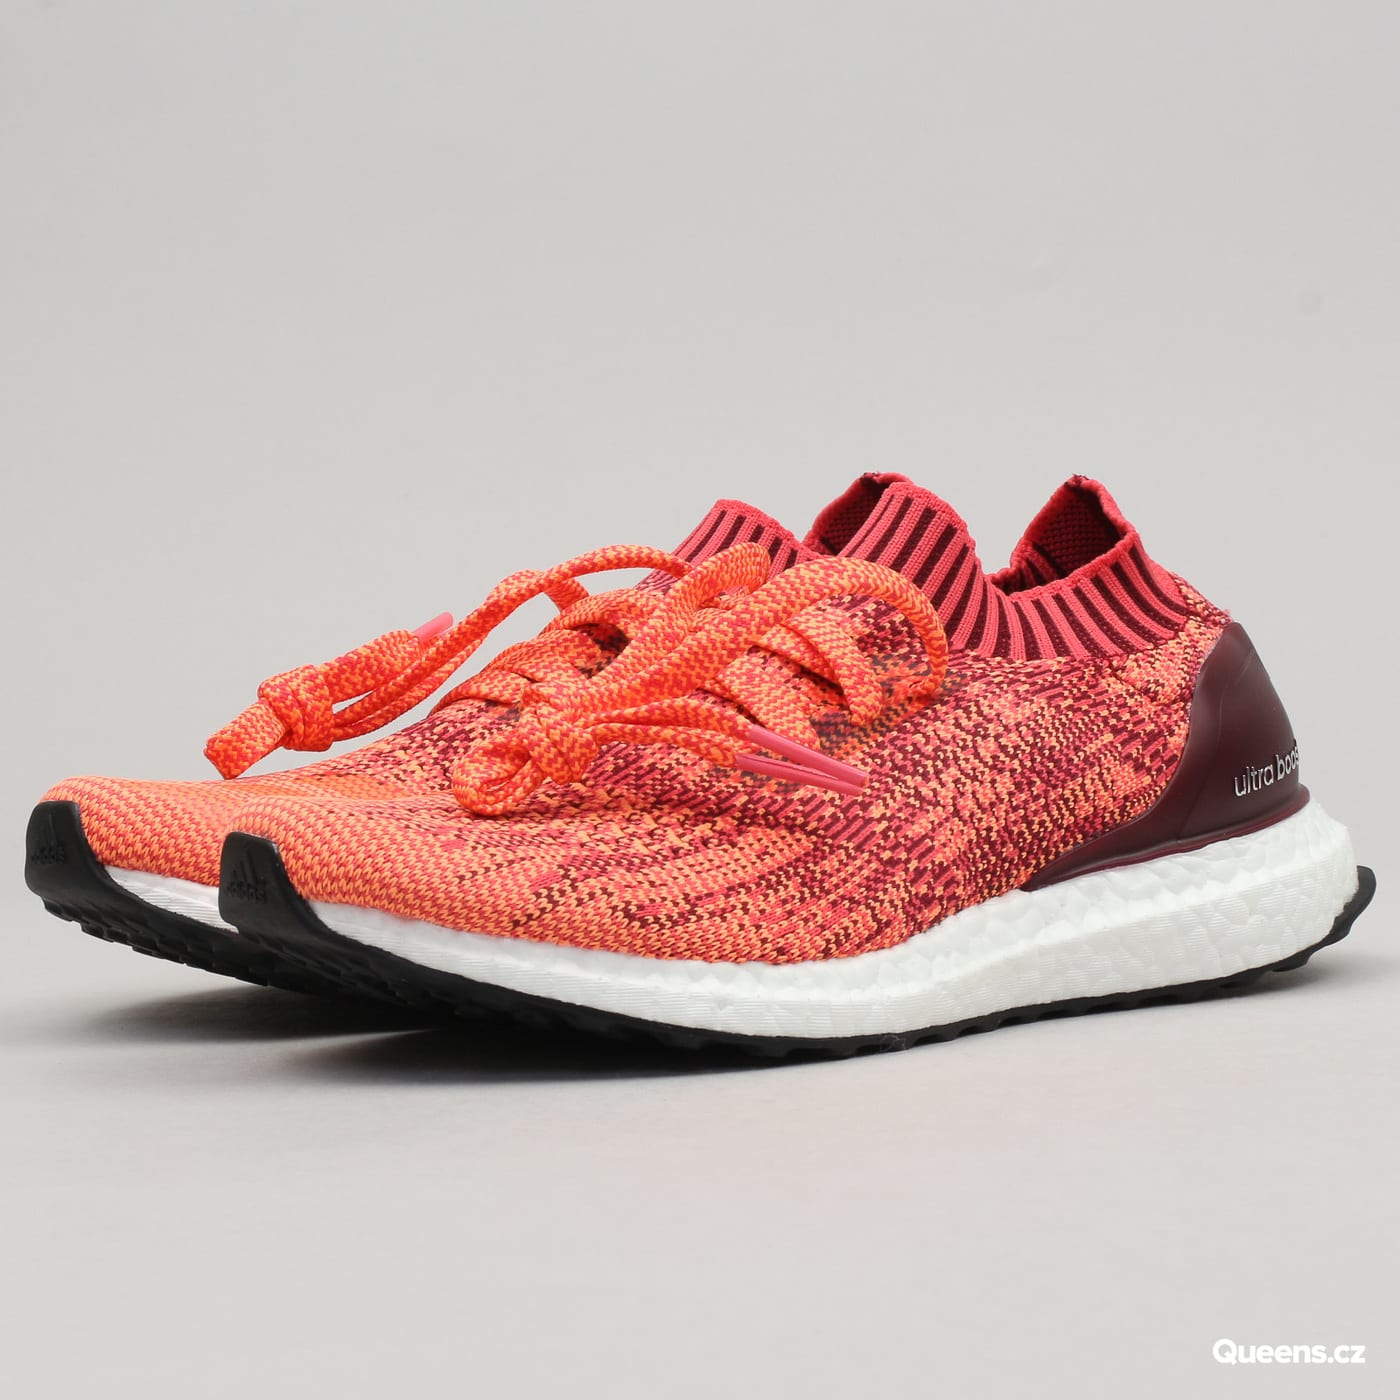 adidas UltraBoost Uncaged W colburgundy / core pink / glow orange